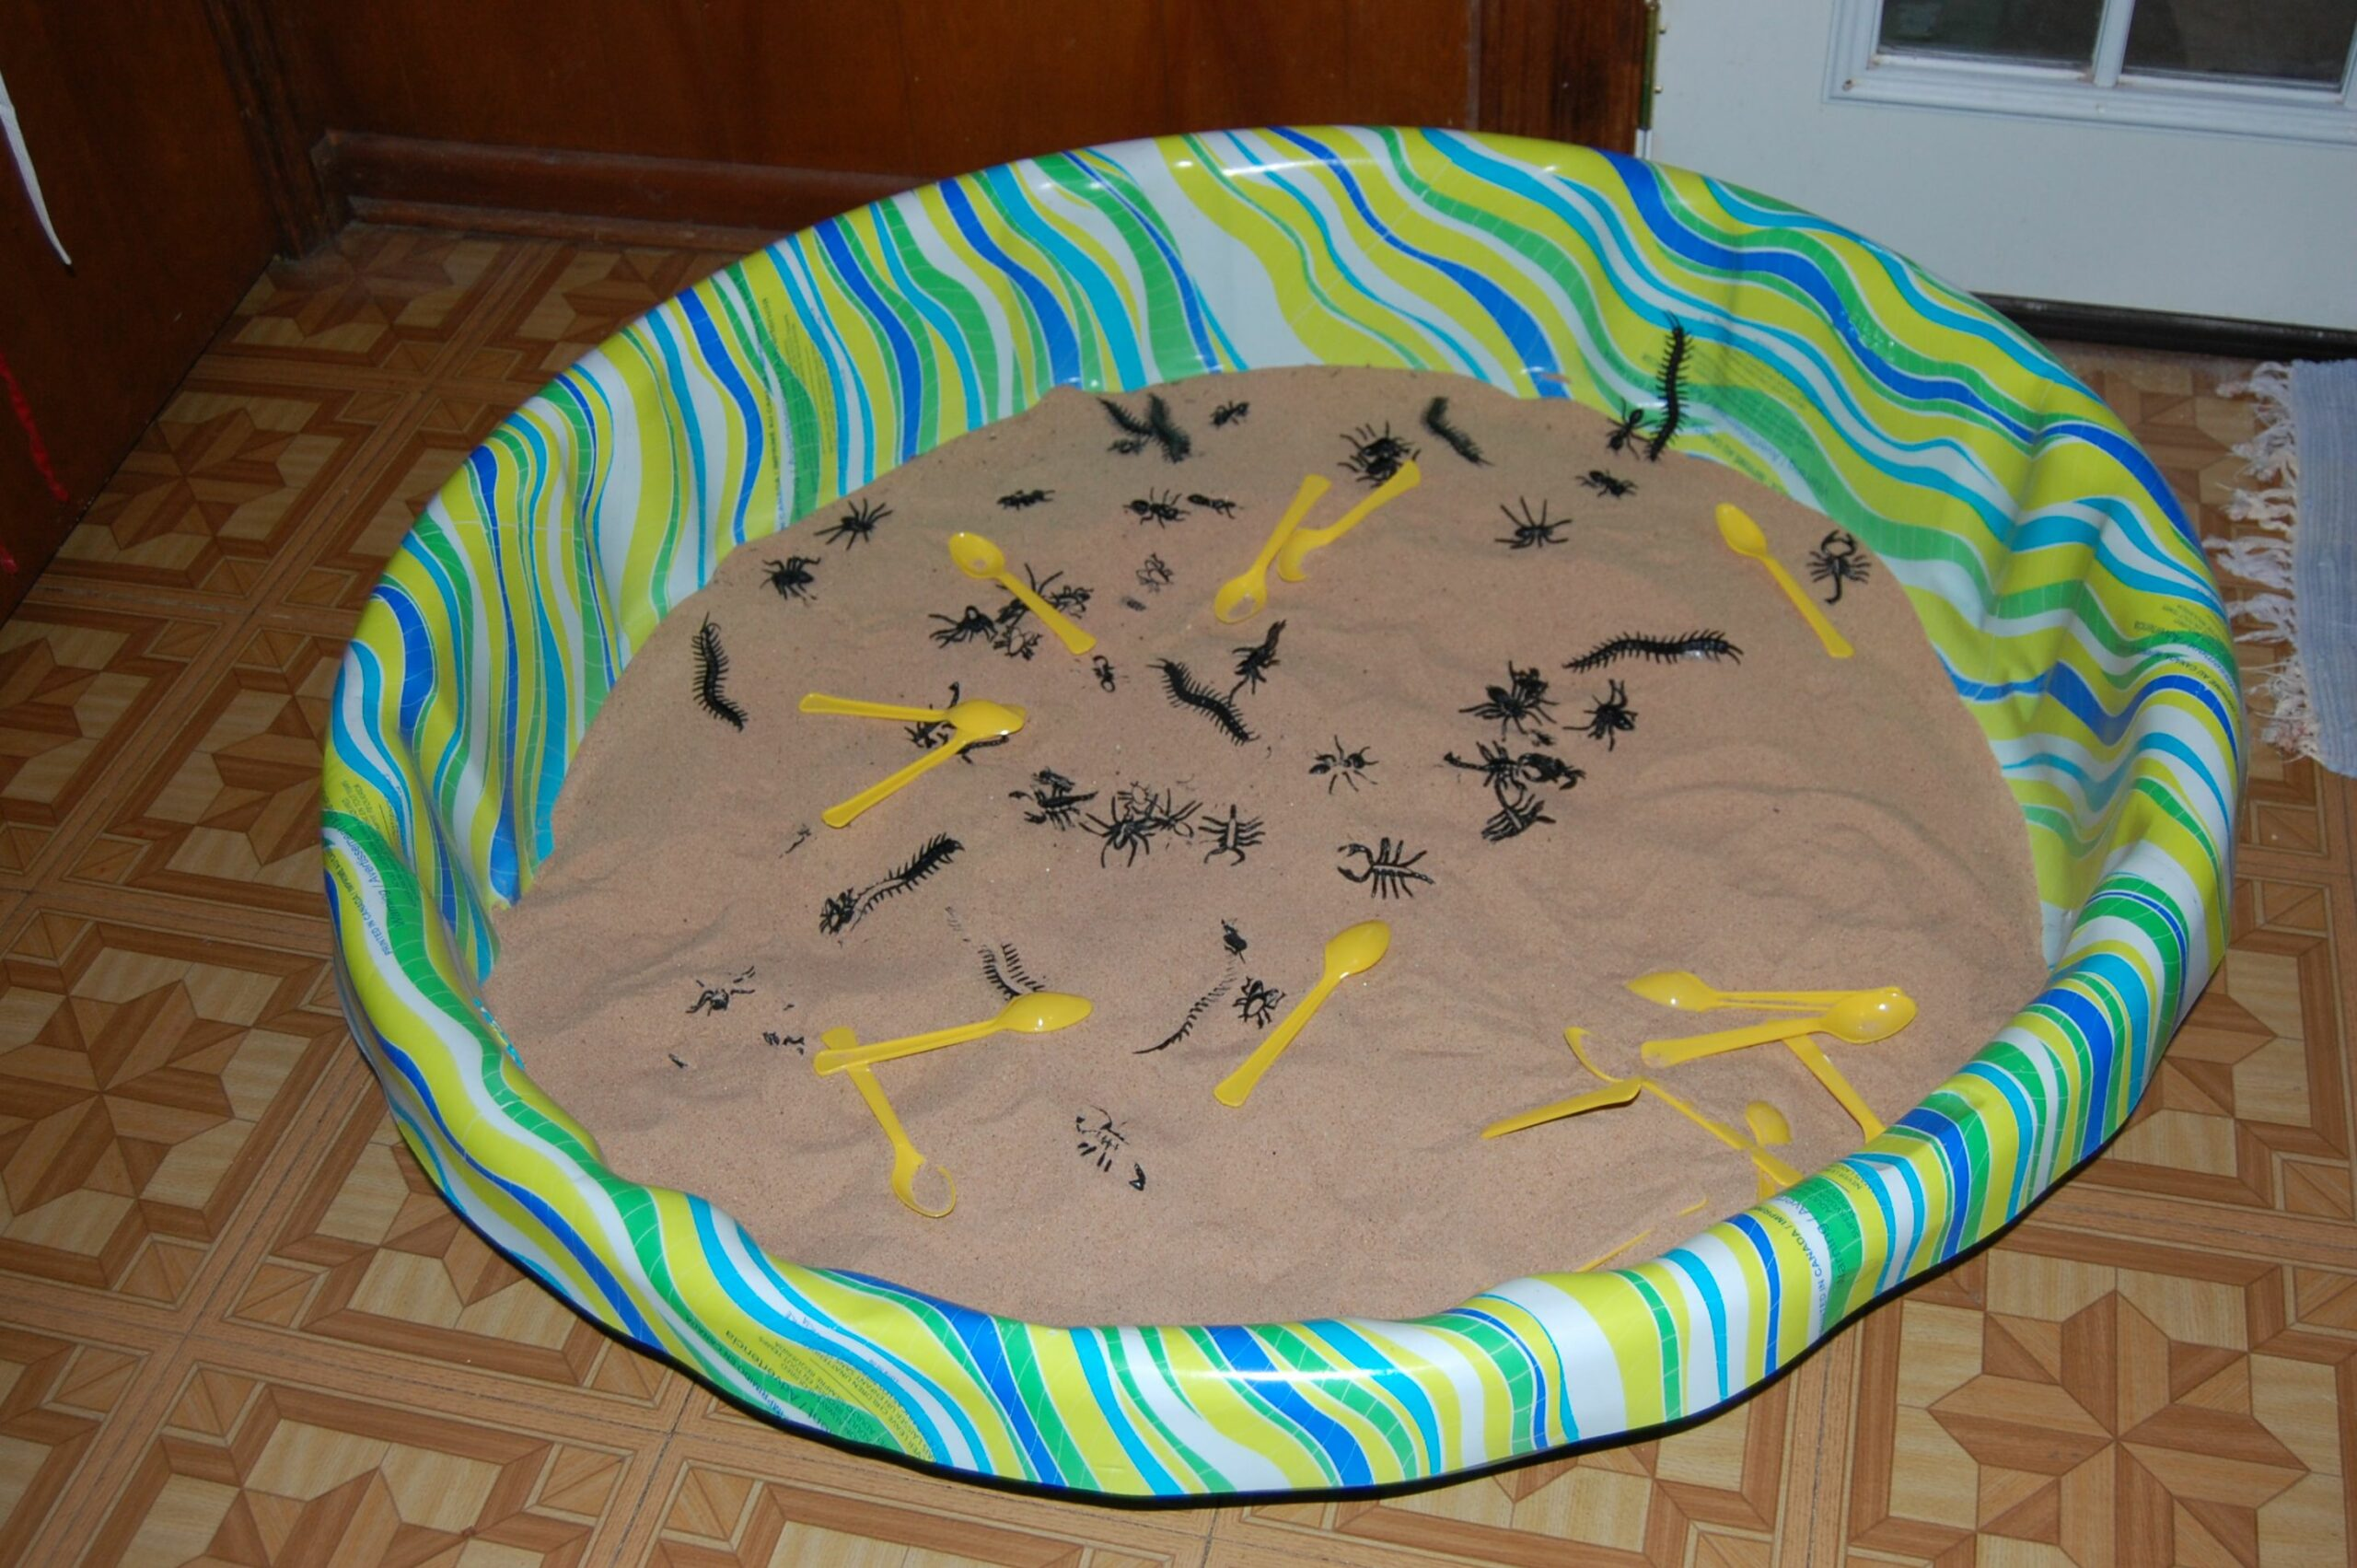 12 Creative Uses for a Kiddie Pool at a Party - The Organized Mom